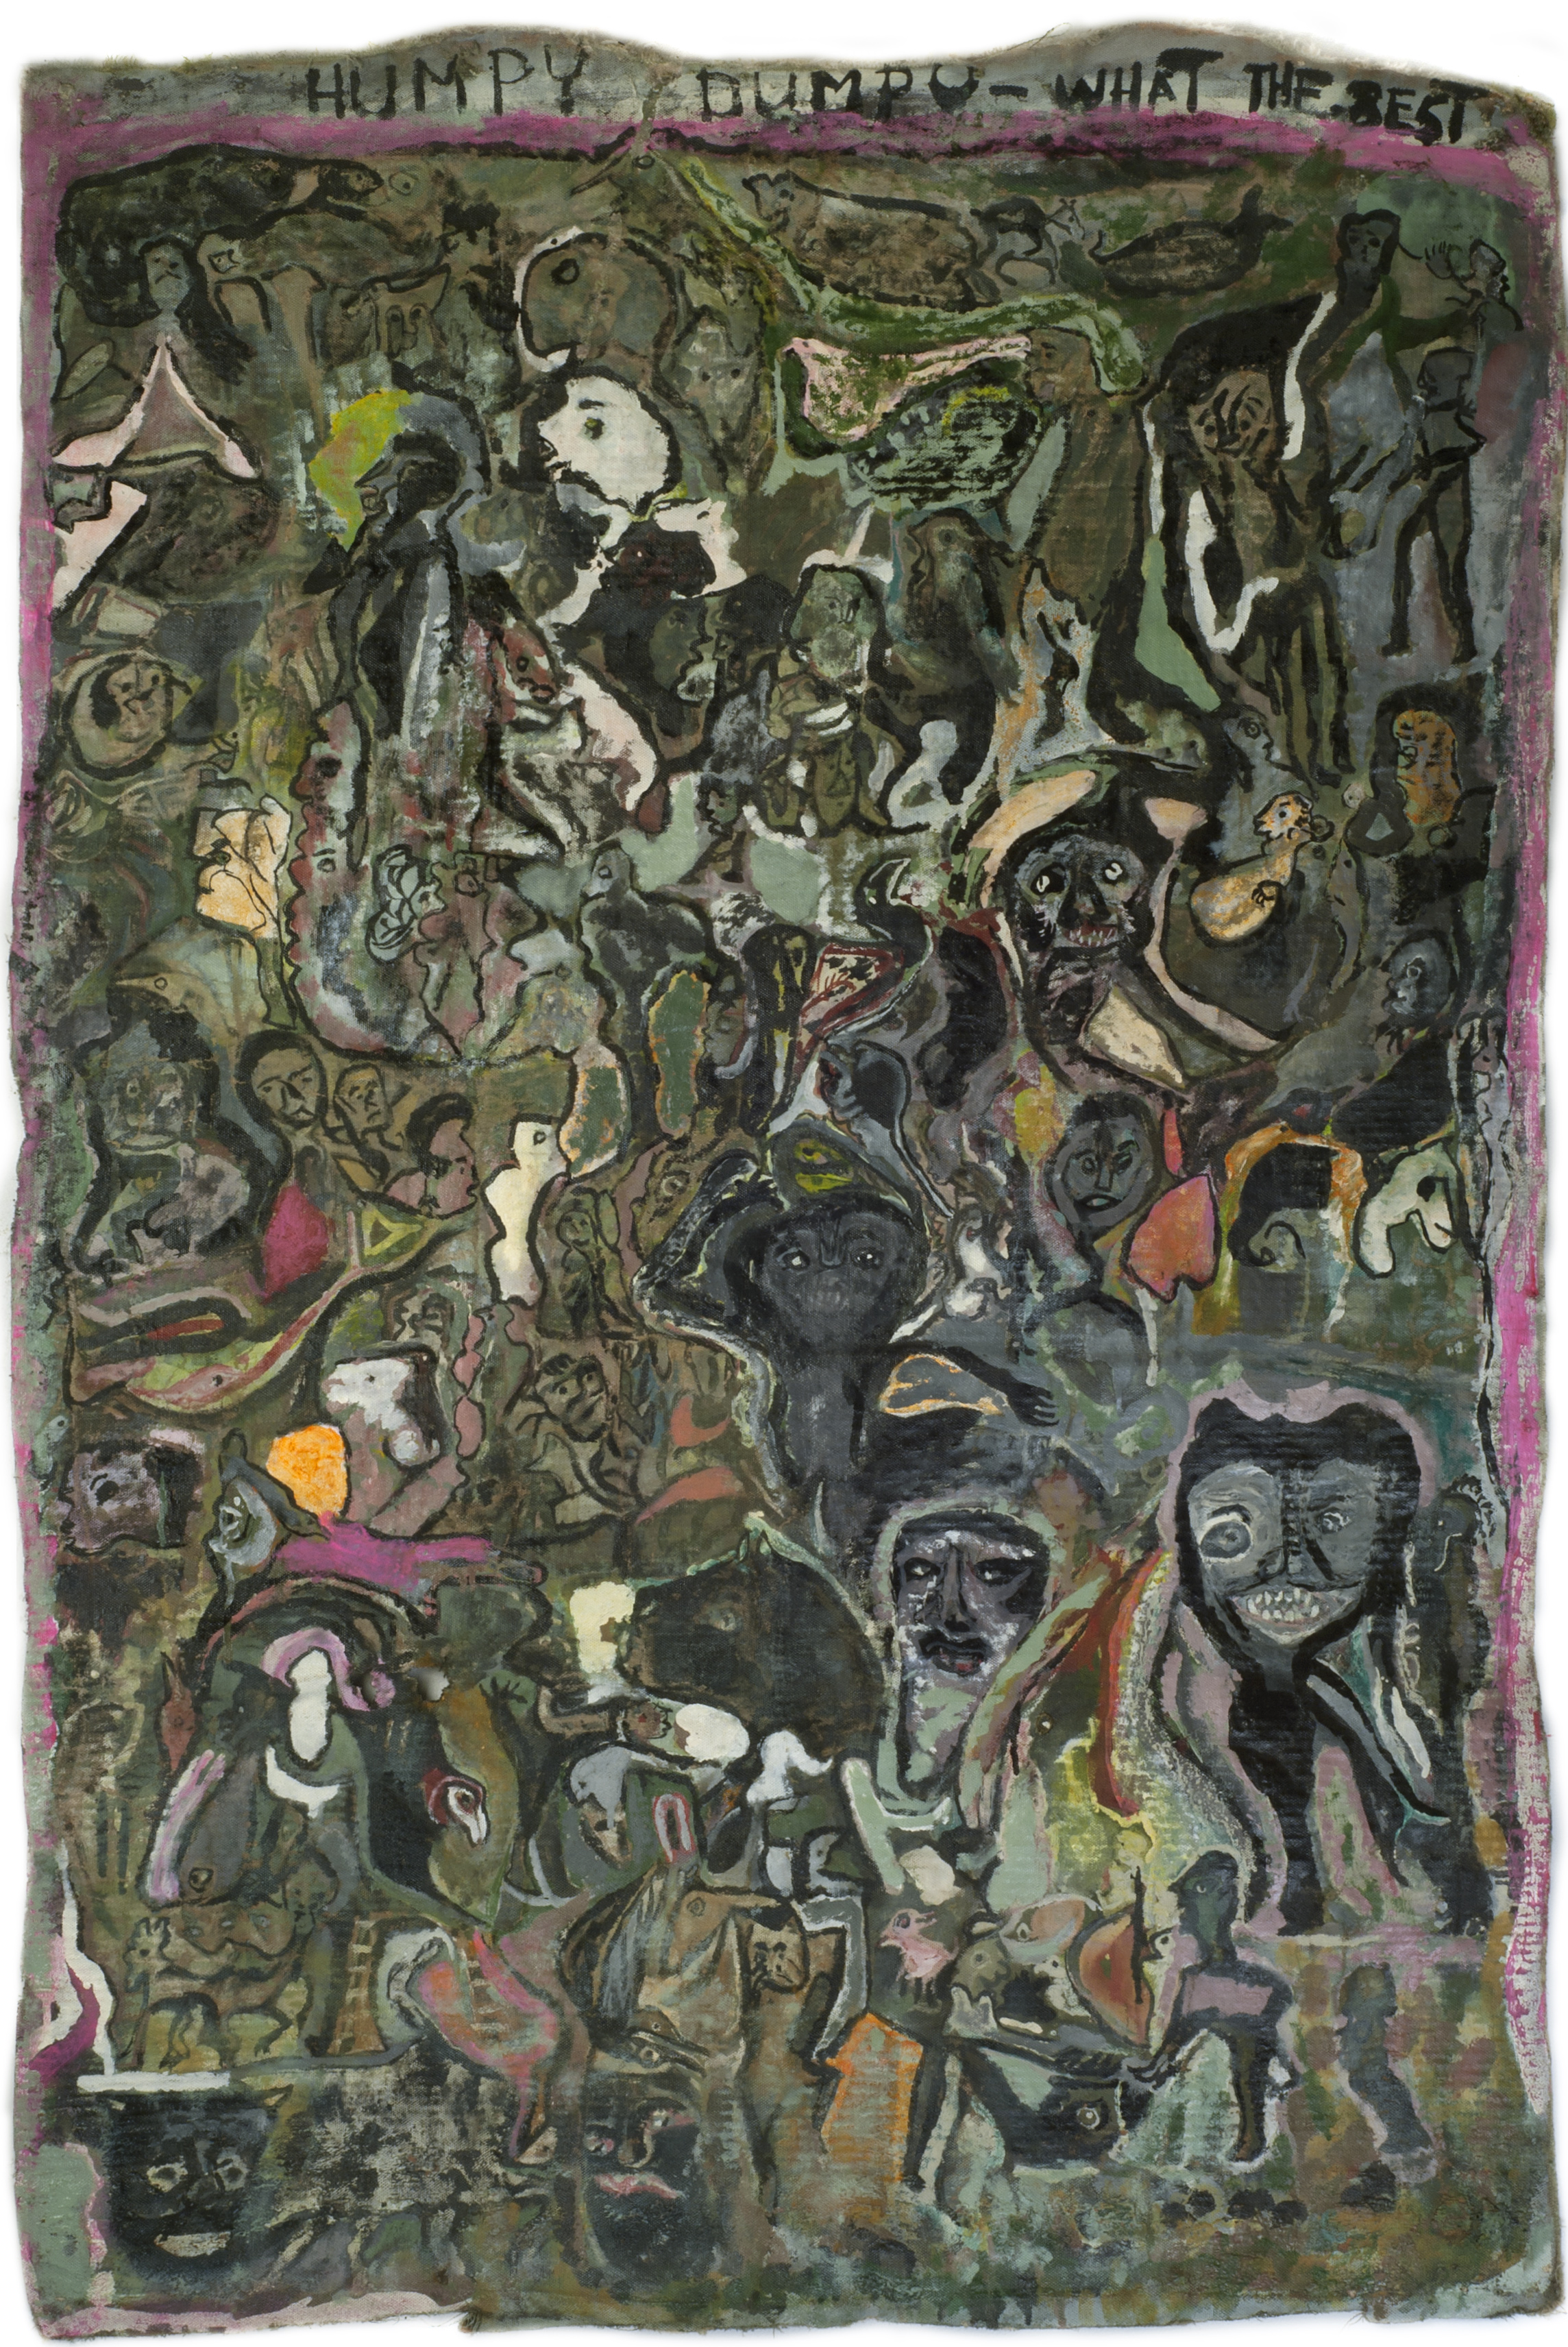 Leonard Daley    Humpty Dumpty What The Best  , 1992 Mixed media/canvas 55 x 37 inches  /  139.7 x 94 cm  /  LE  44